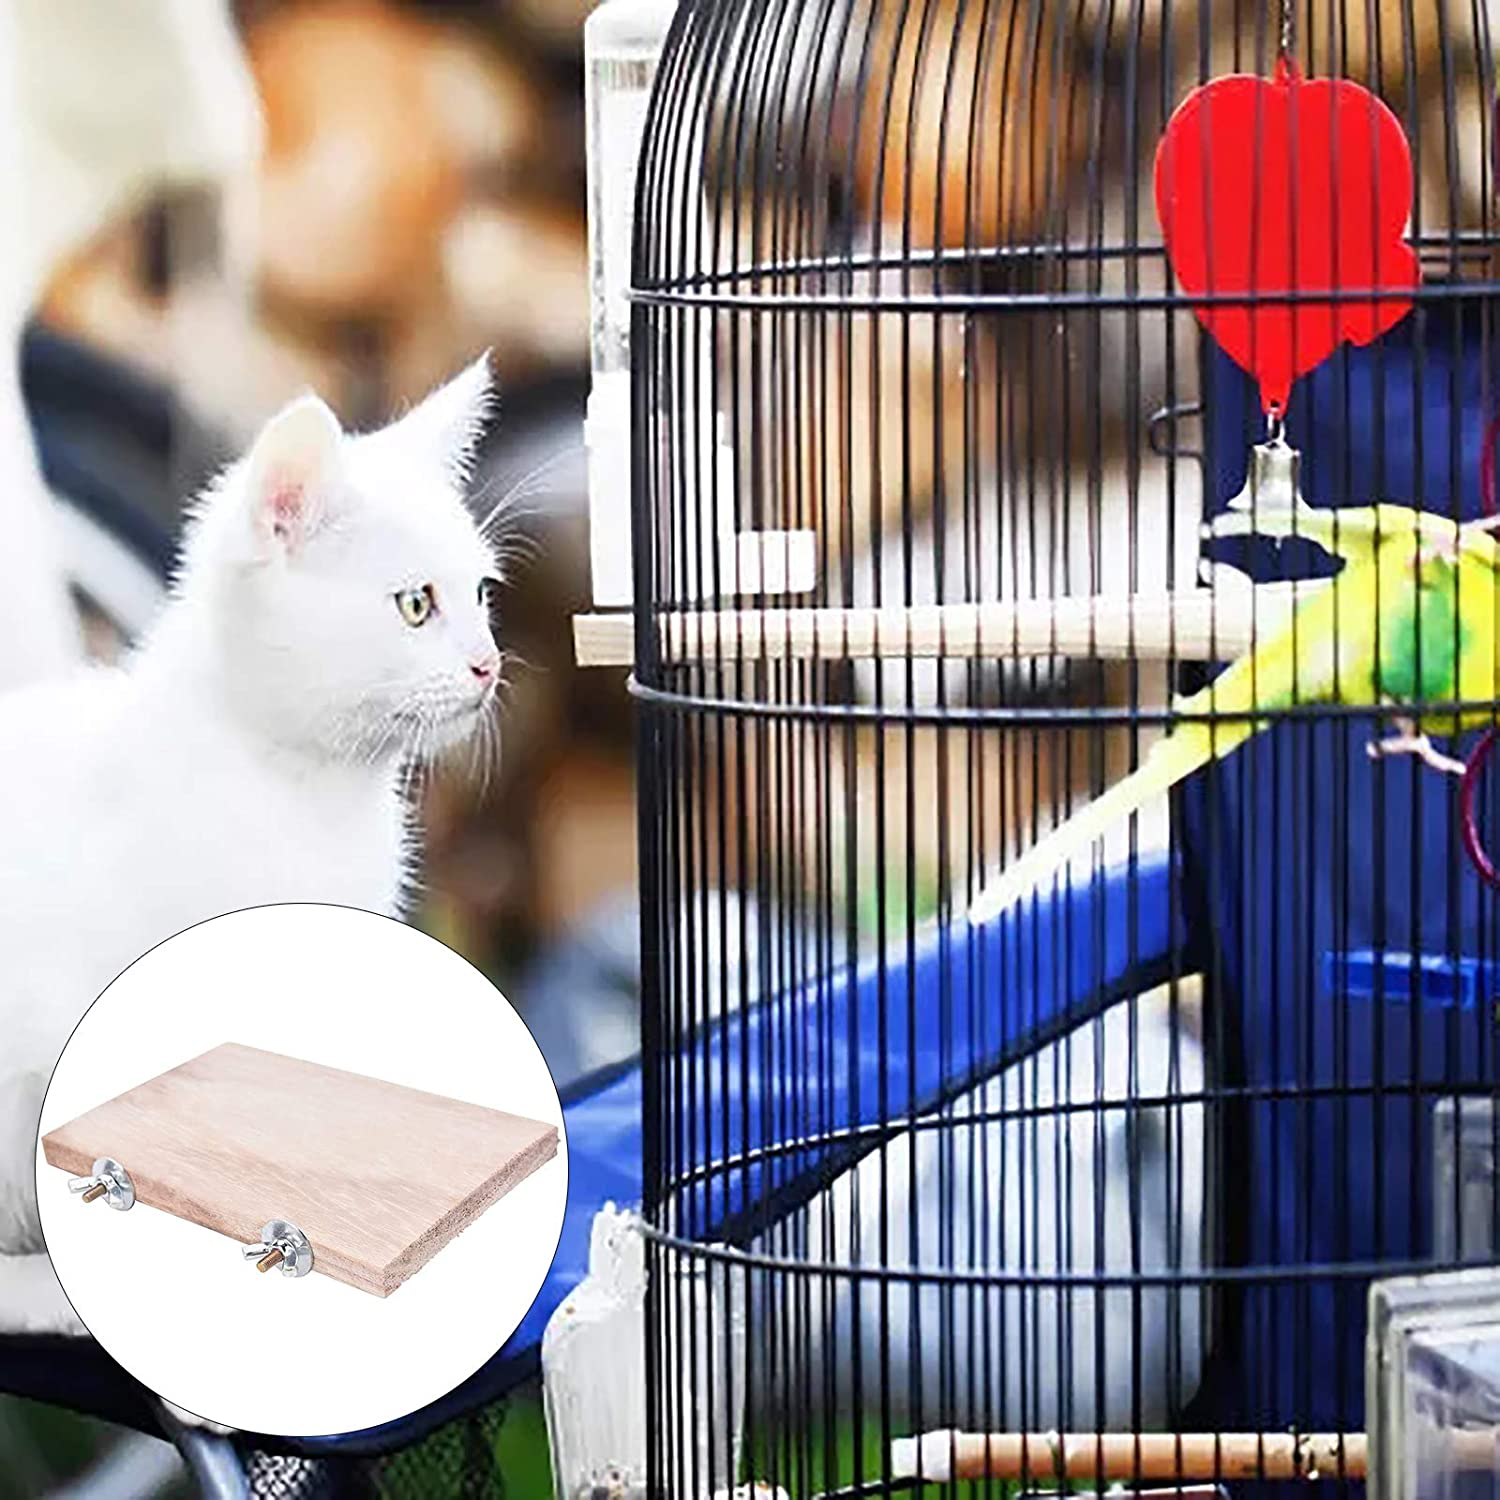 YUANYUAN 3 Pcs Rectangle Activity Platform,Wood Cage Shelf Chinchilla Perch Cage Platform Toy Rectangle Playground Cage Corner Shelf Perch Cage Platform for Small Animals Exercise Quiet Wheel